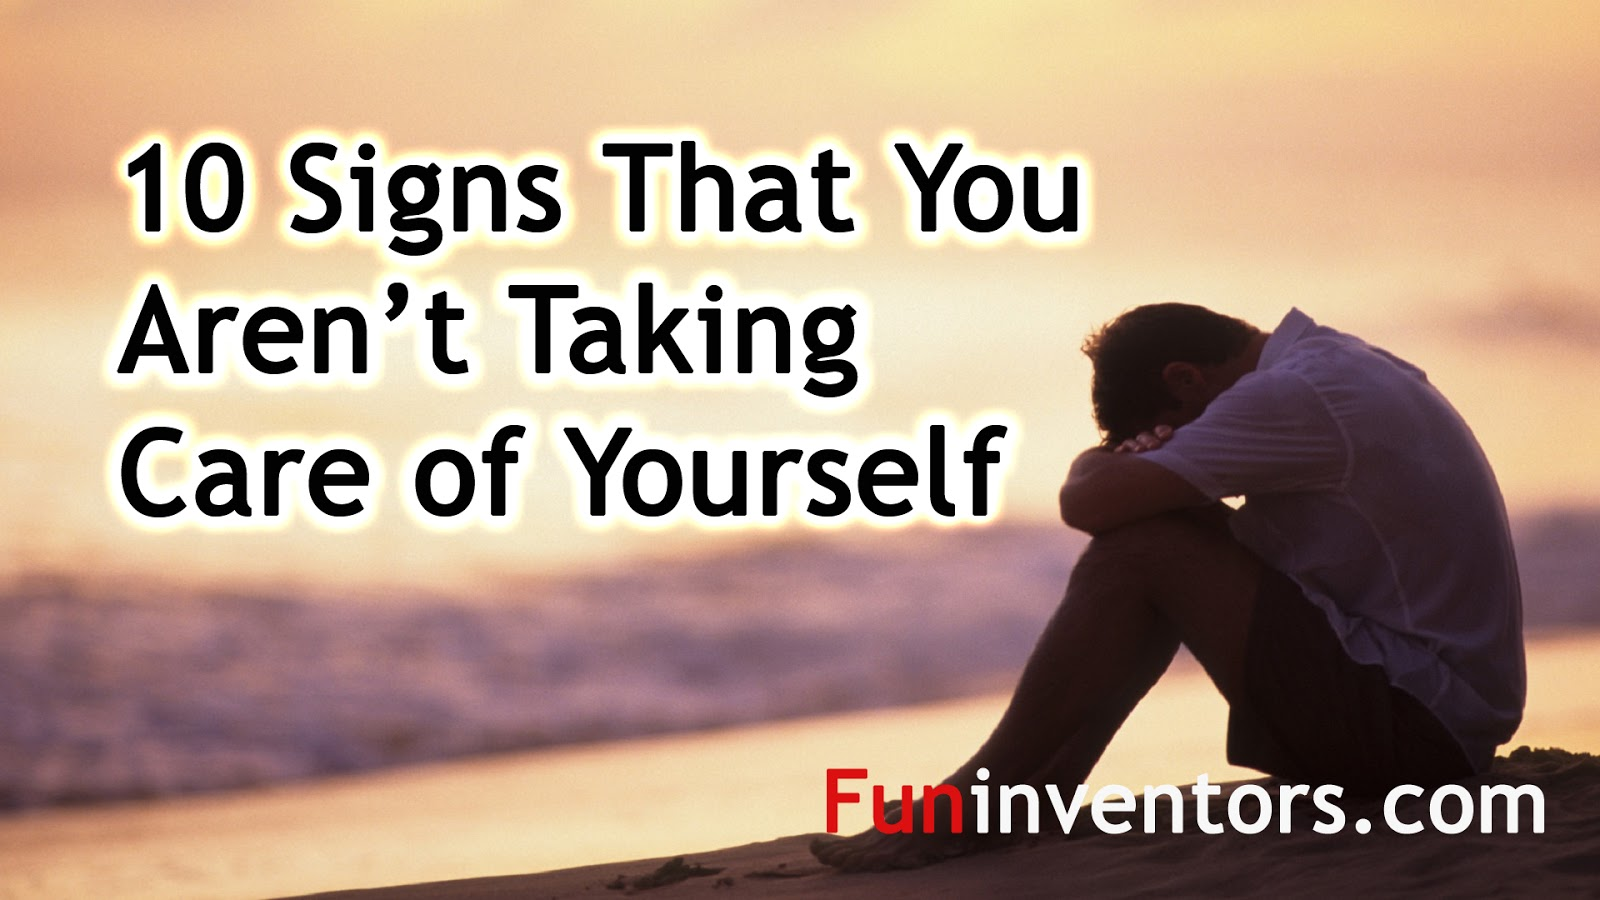 10-Signs-That-You-Are-not-Taking-Care-of-Yourself